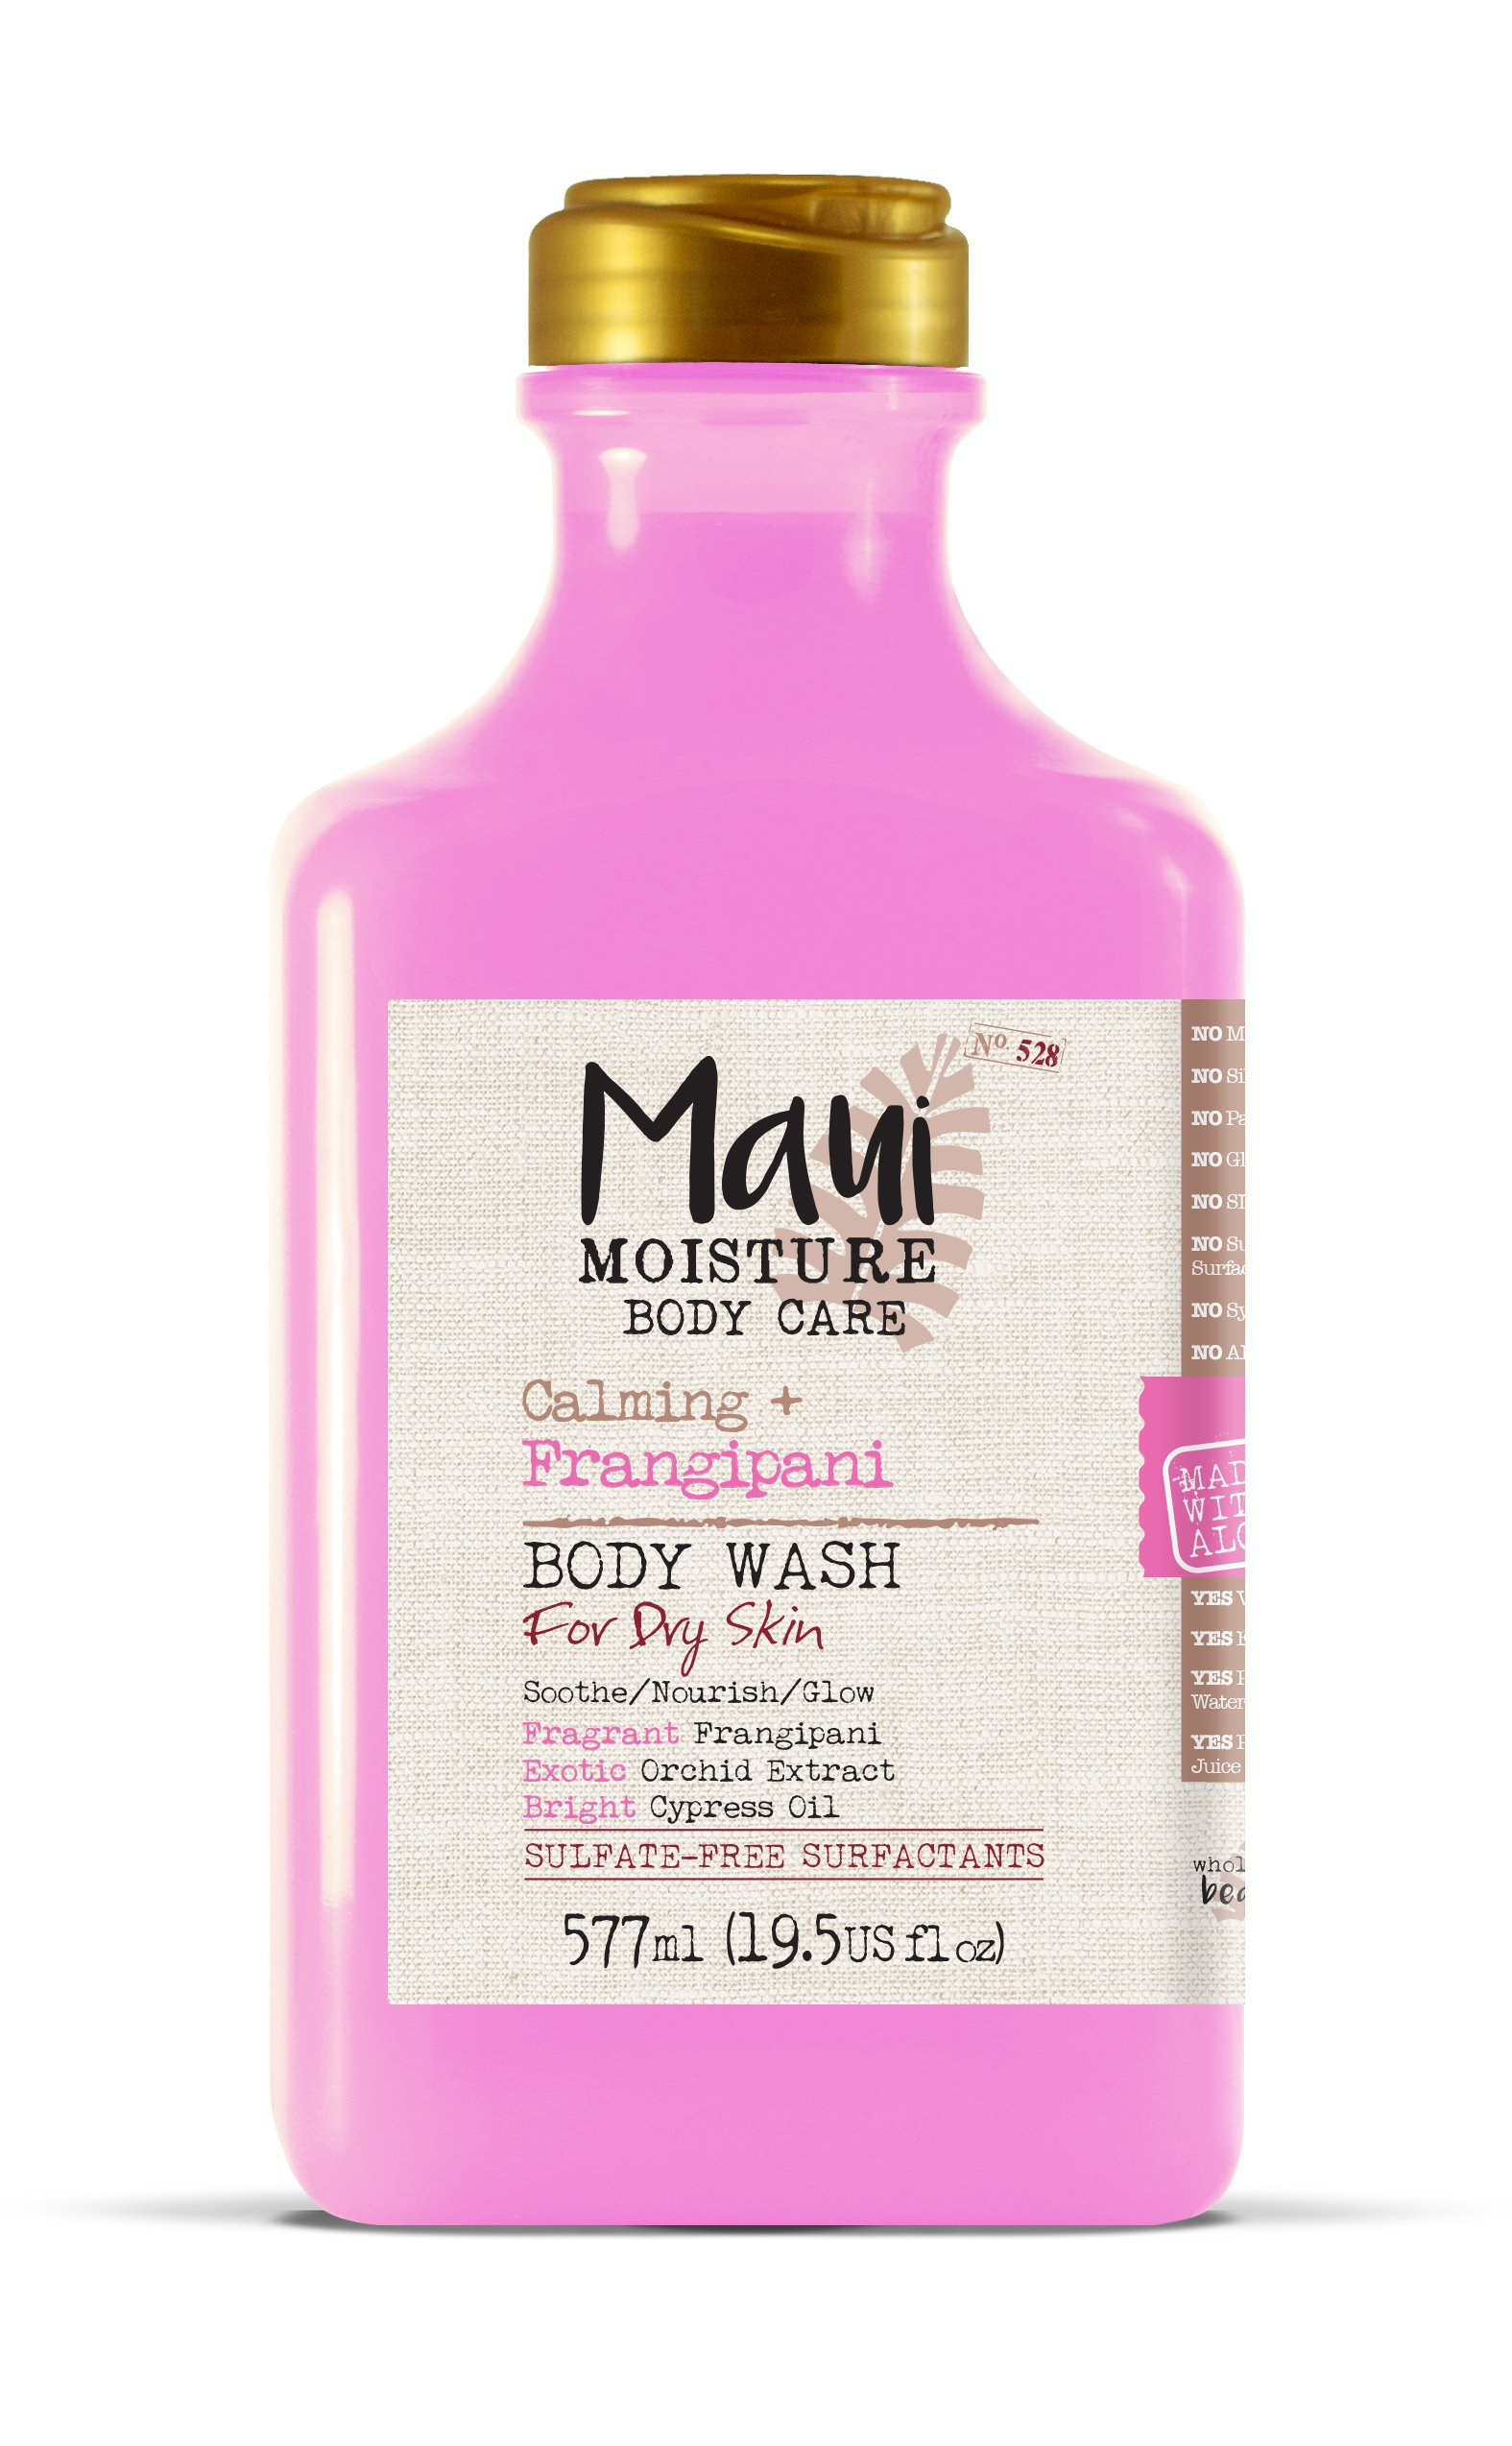 Maui Moisture Frangipani Body Wash for Dry Skin 19.5 Ounce Moisturizing Body Wash Formulated for Dry Skin, with Aloe Vera Juice and Coconut Water, Silicone Free